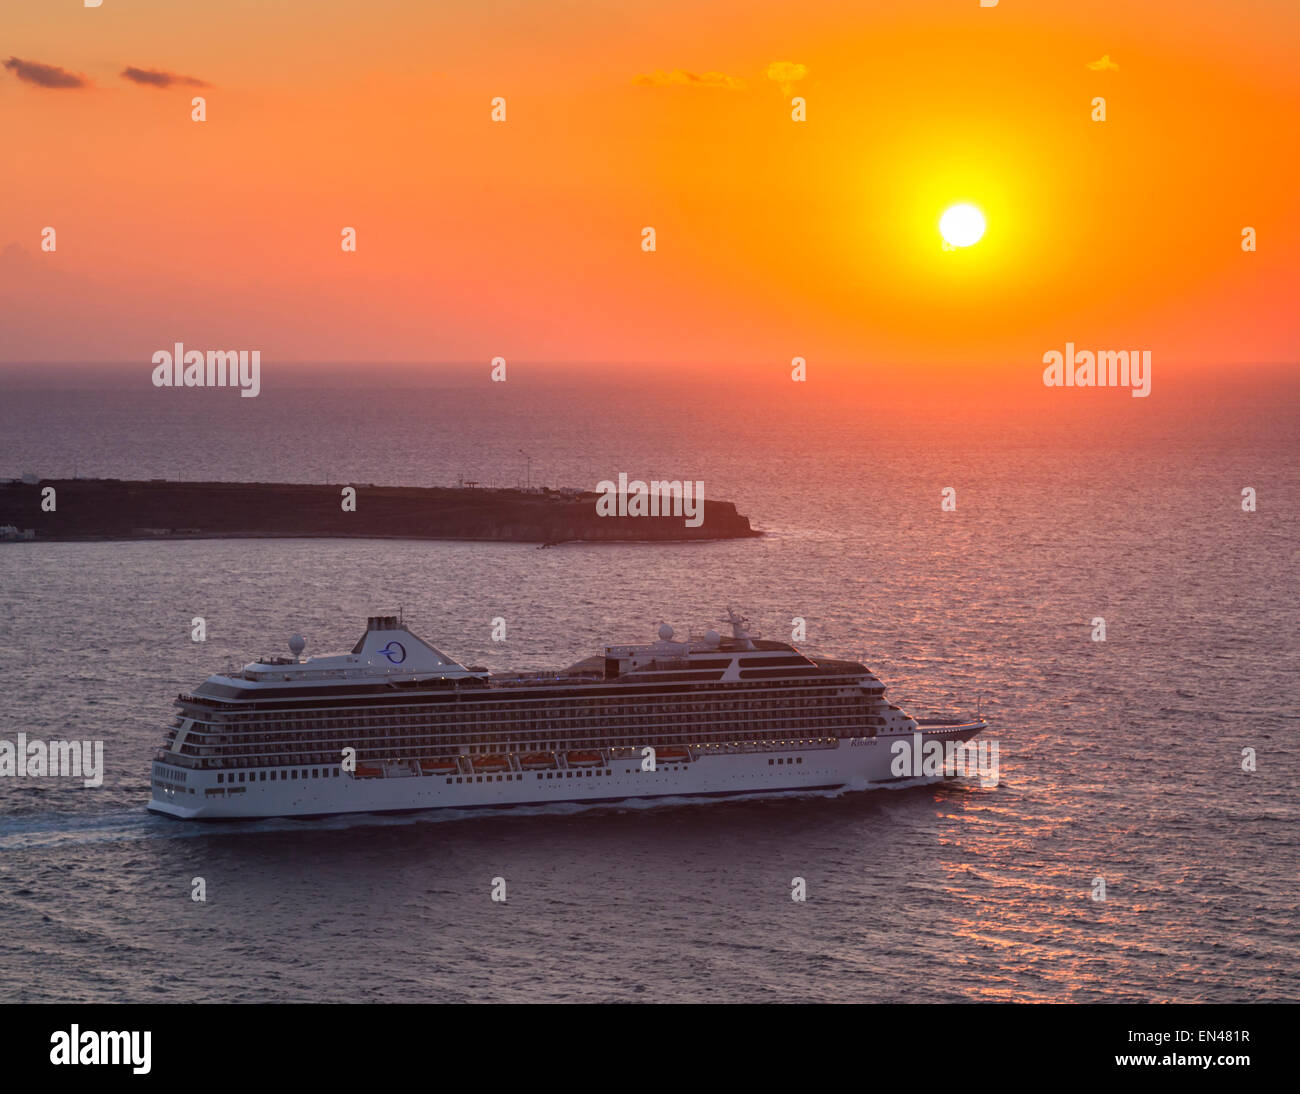 Cruise ship departing Santorini by the evening sunset headed for a new destination, Thera, Greece. - Stock Image